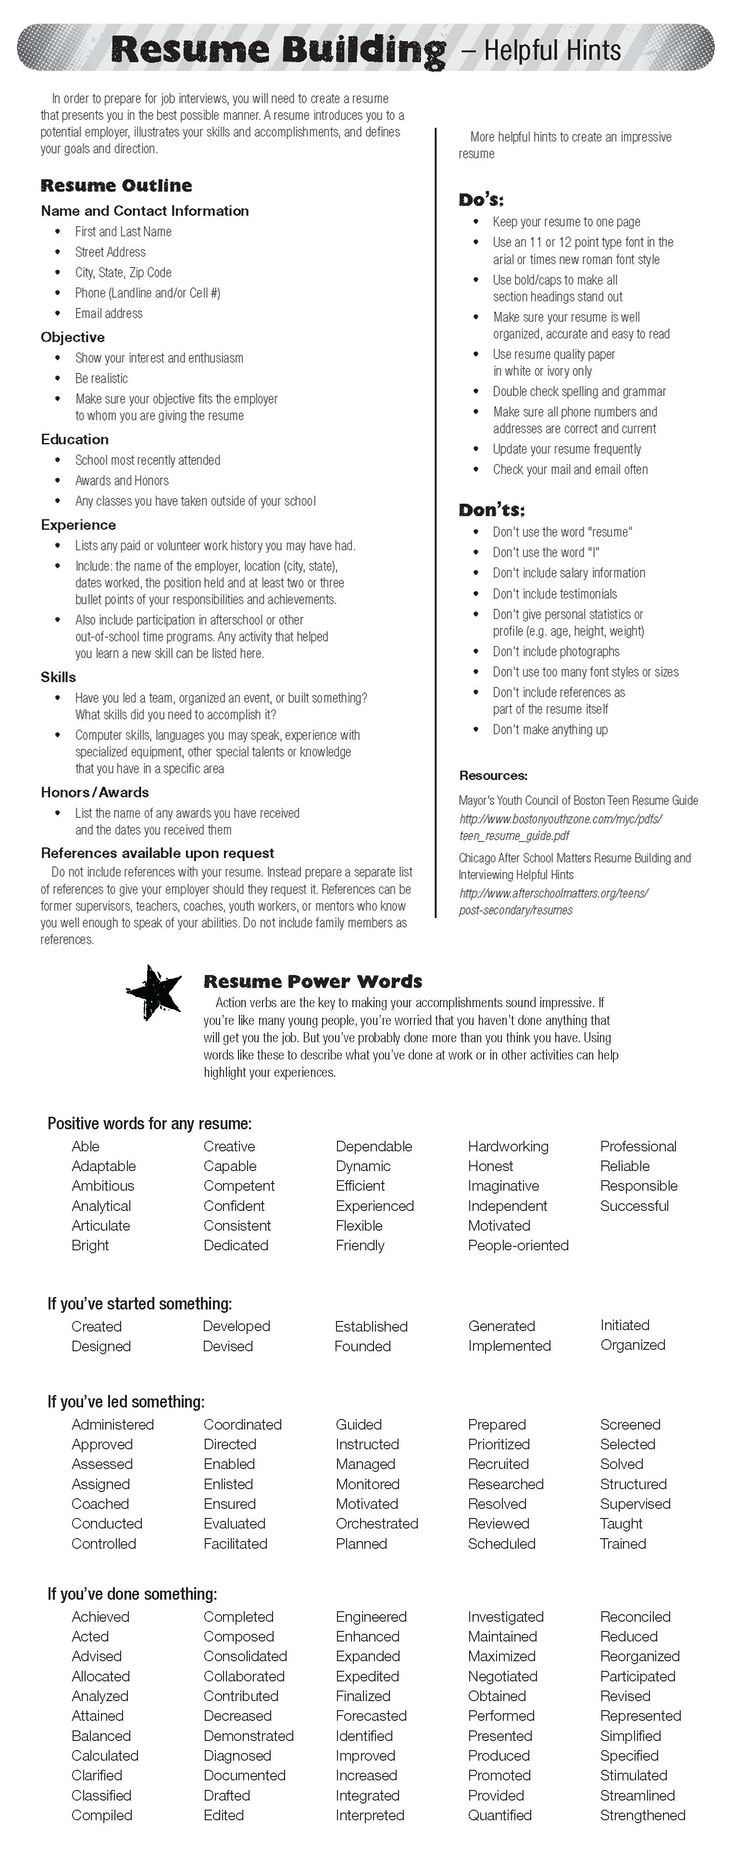 Opposenewapstandardsus  Seductive  Ideas About Resume On Pinterest  Cv Format Resume Cv And  With Fair  Ideas About Resume On Pinterest  Cv Format Resume Cv And Resume Templates With Enchanting Resume Server Description Also Sample Project Management Resume In Addition Program Manager Resumes And Hybrid Resume Template Word As Well As Resume Examples Engineering Additionally What Should A Resume Cover Letter Include From Pinterestcom With Opposenewapstandardsus  Fair  Ideas About Resume On Pinterest  Cv Format Resume Cv And  With Enchanting  Ideas About Resume On Pinterest  Cv Format Resume Cv And Resume Templates And Seductive Resume Server Description Also Sample Project Management Resume In Addition Program Manager Resumes From Pinterestcom